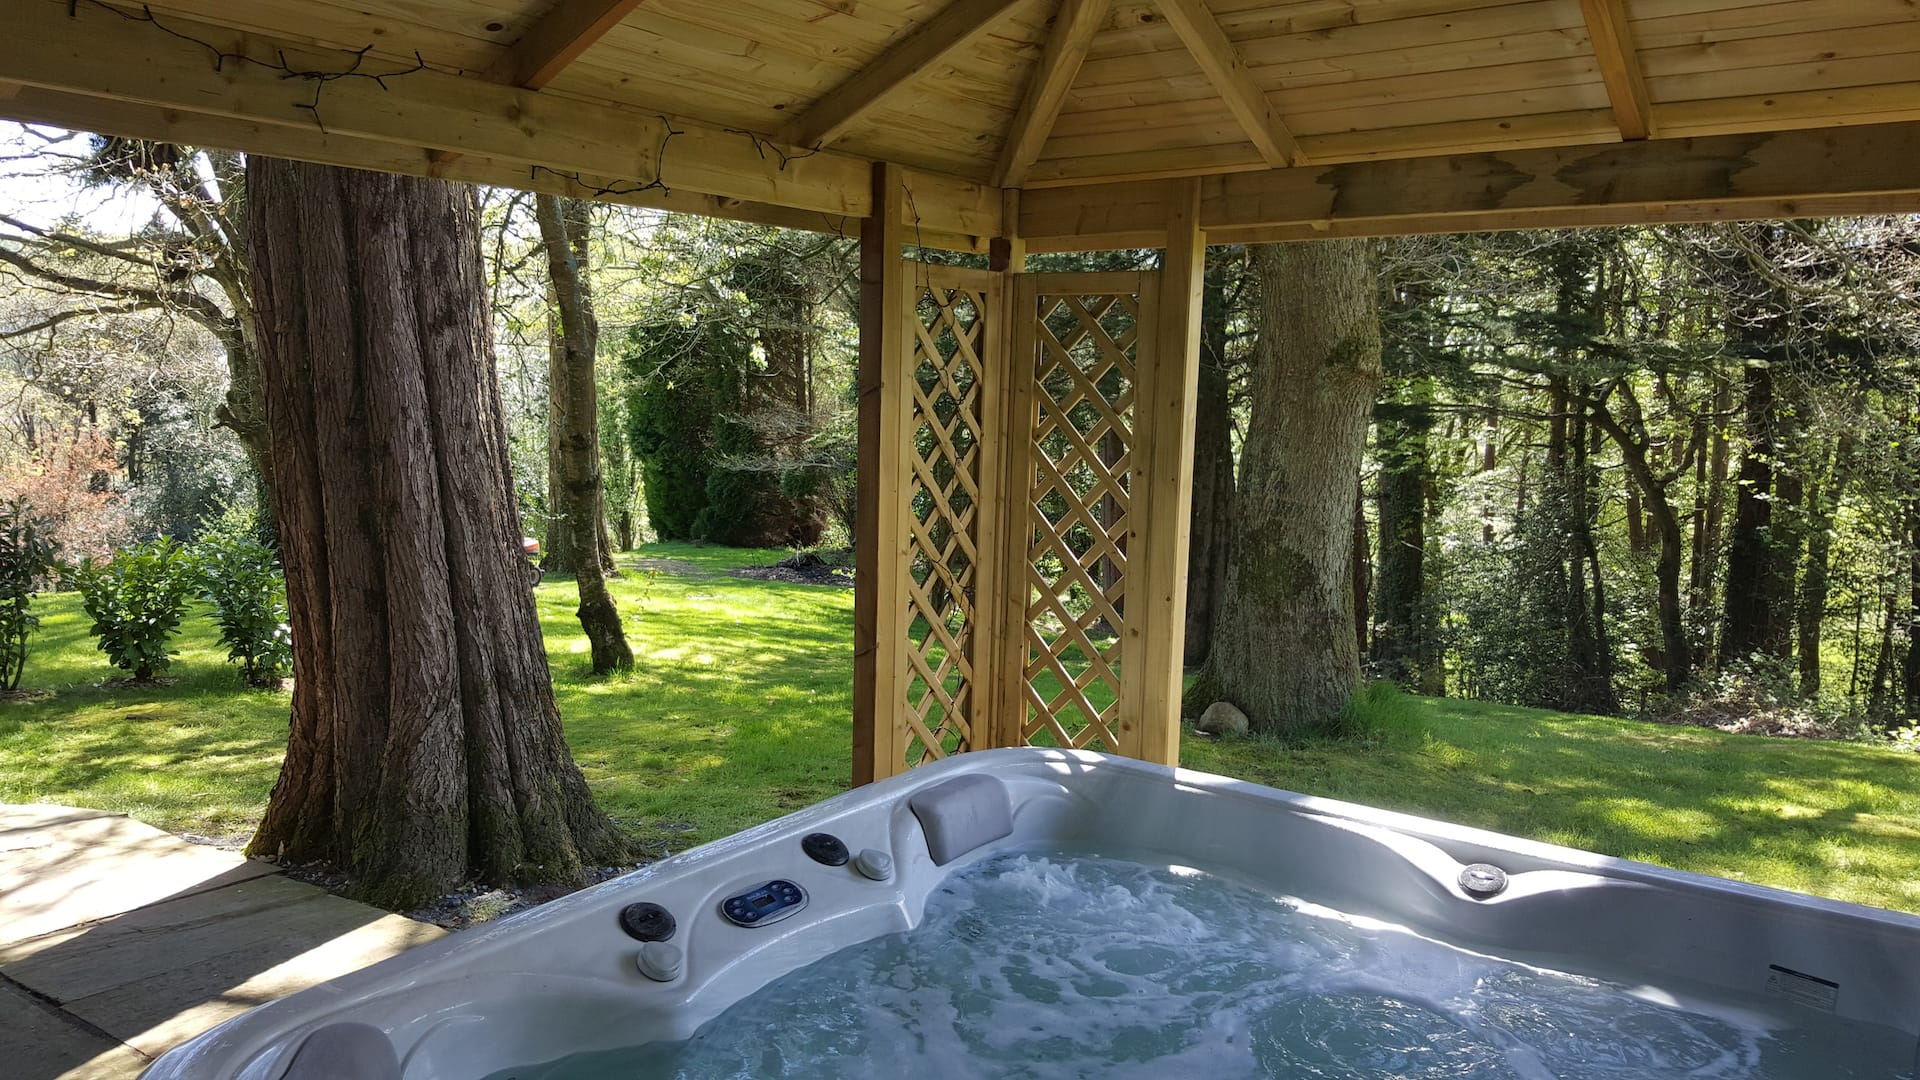 Mountain Chalet (Co. Wicklow) – one of the most romantic cottages for 2 with a hot tub in Ireland